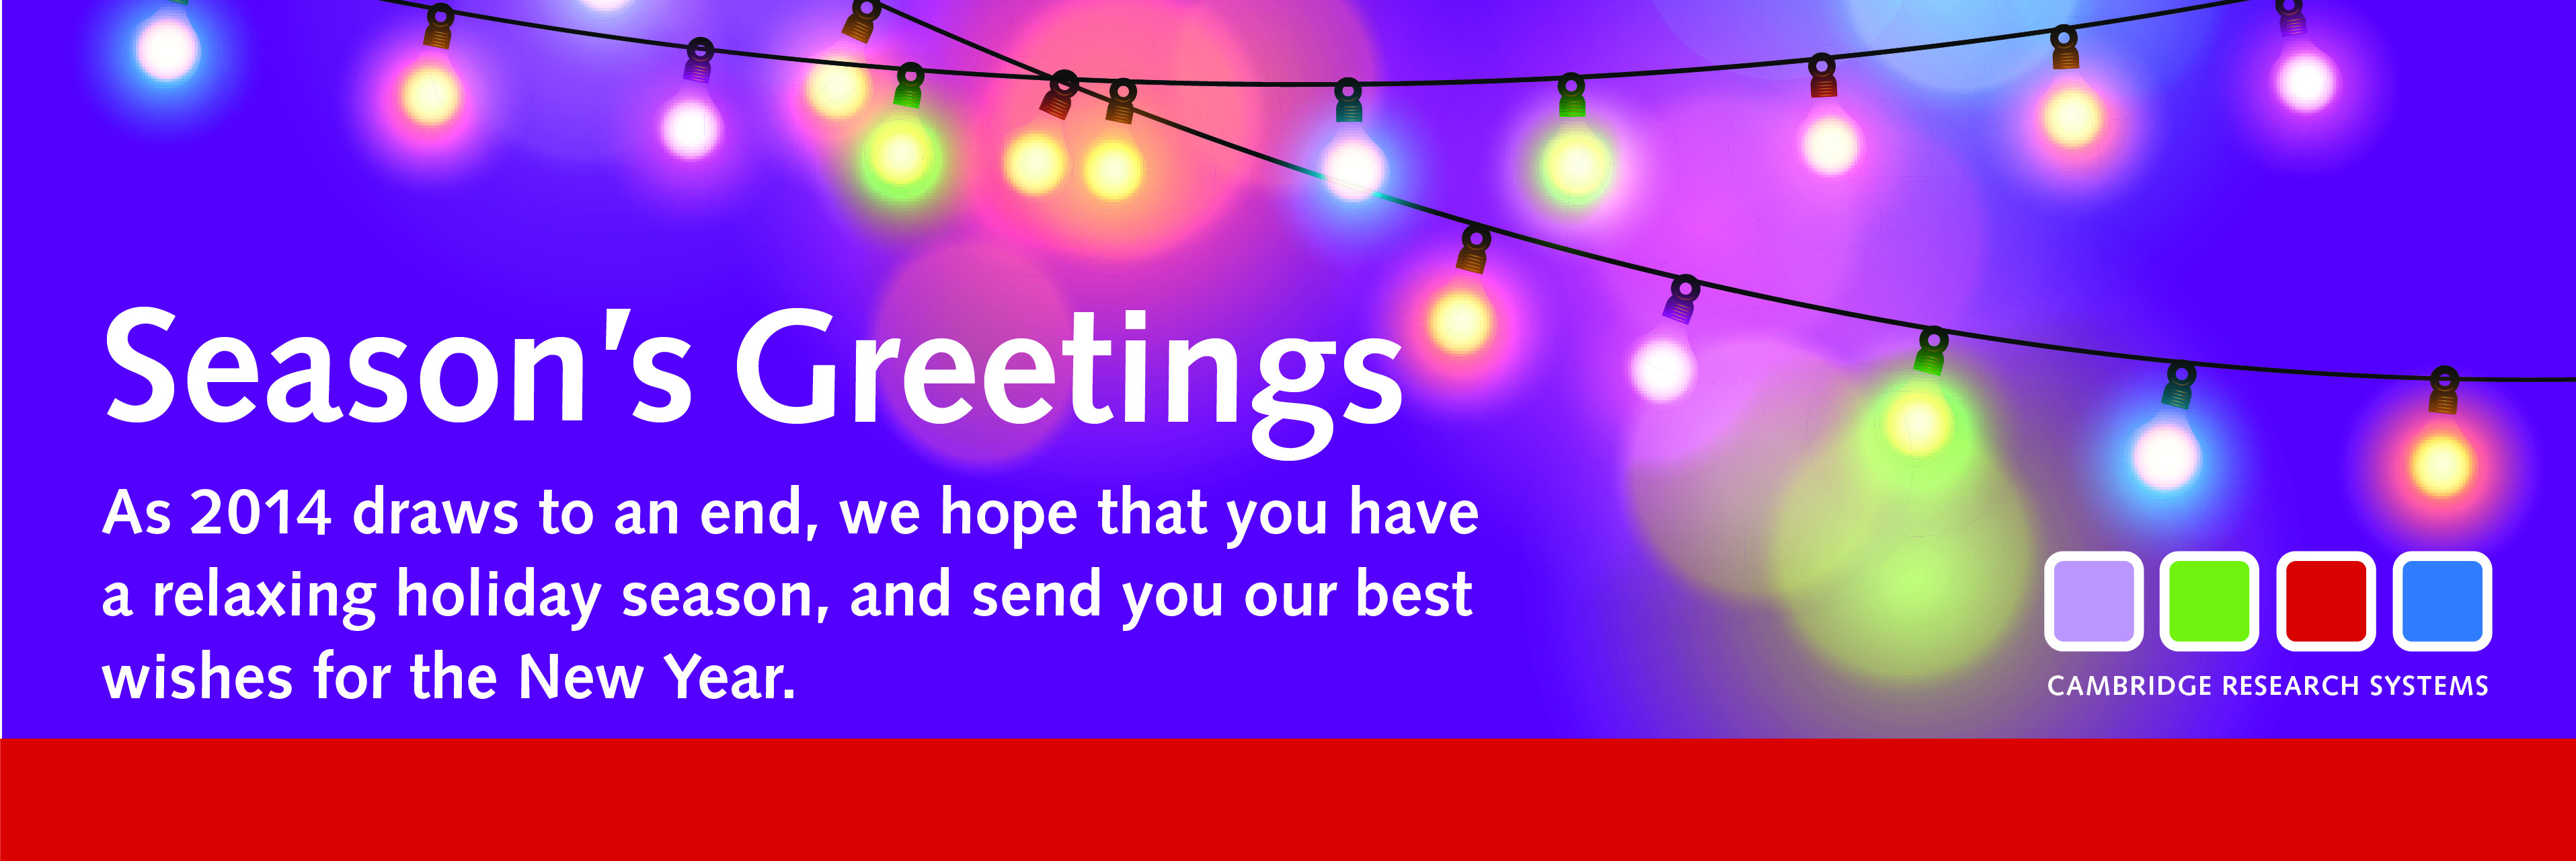 01-CRS-Harding-Christmas-Web-Banners-2014.png